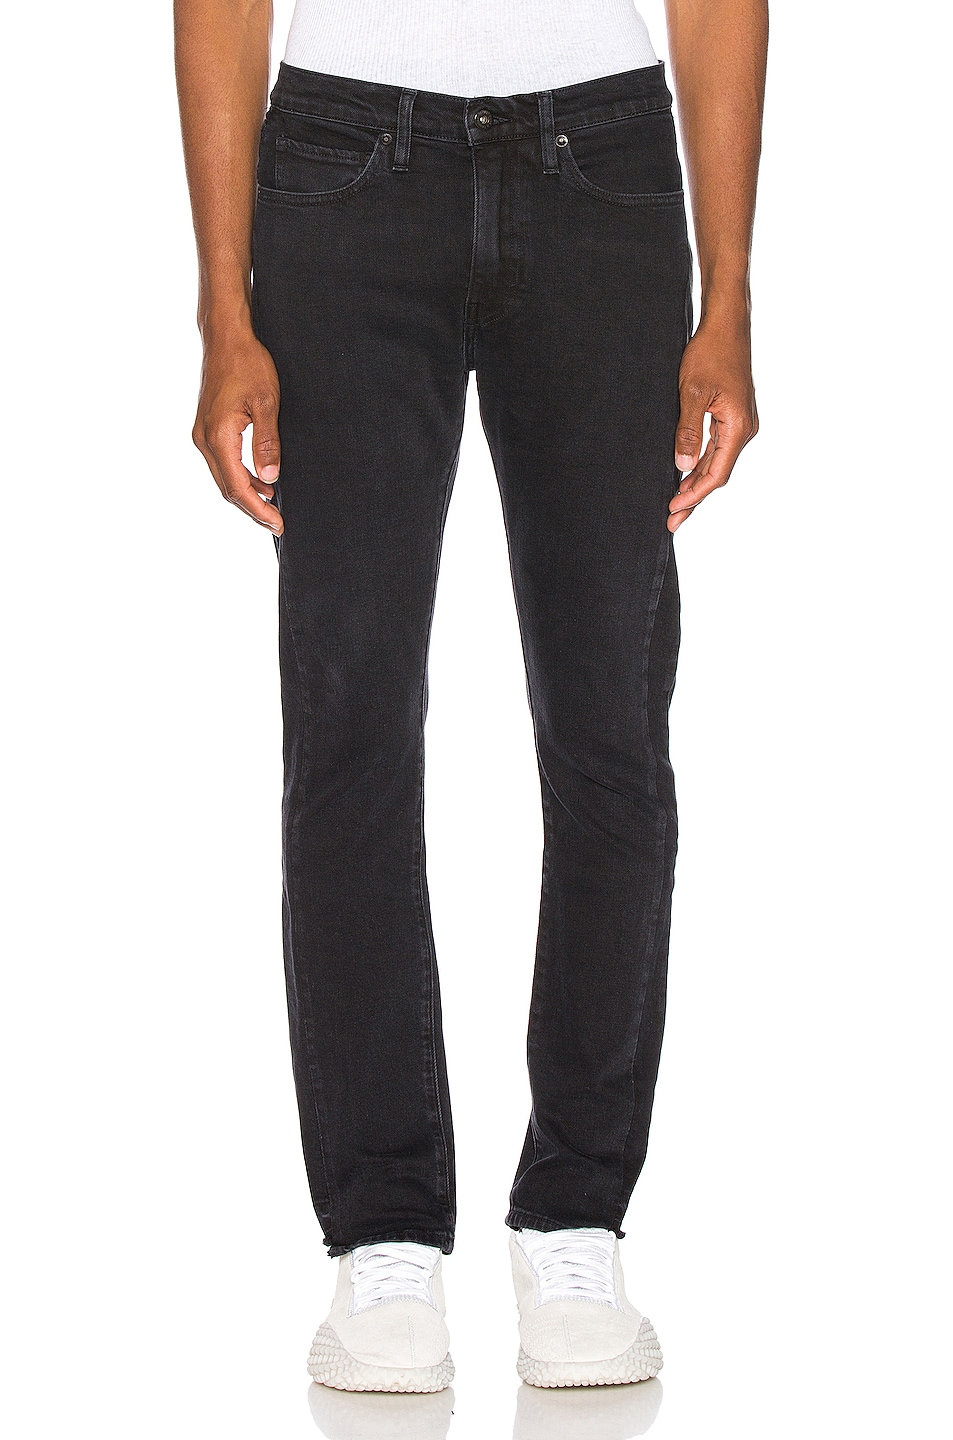 Image 1 of LEVI'S: Made & Crafted 510 Skinny Jean in Pieced Double Black